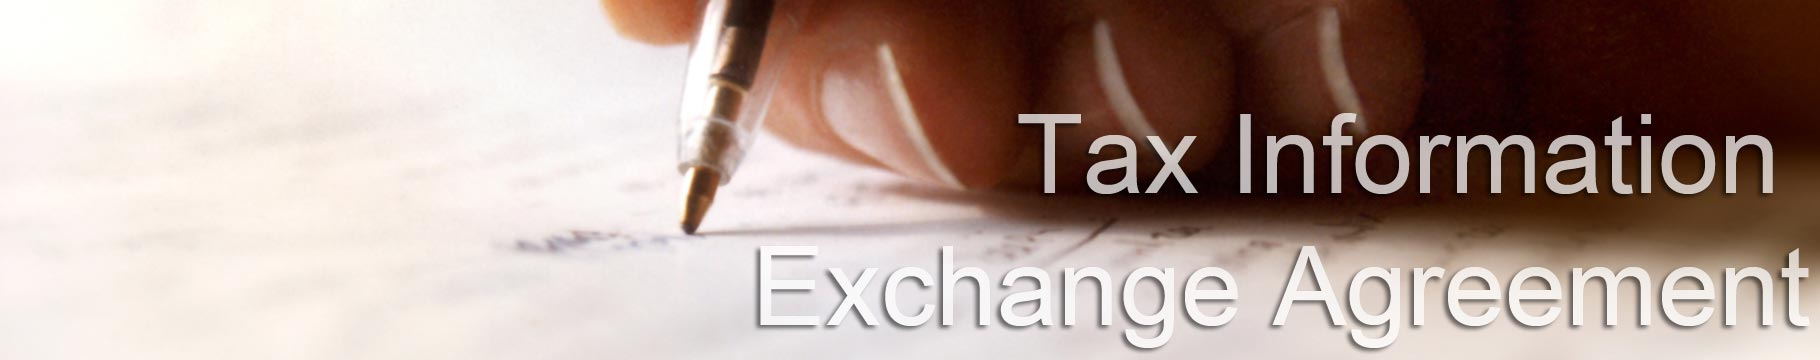 Tax Information Exchange Agreement  Tiea  Slogold